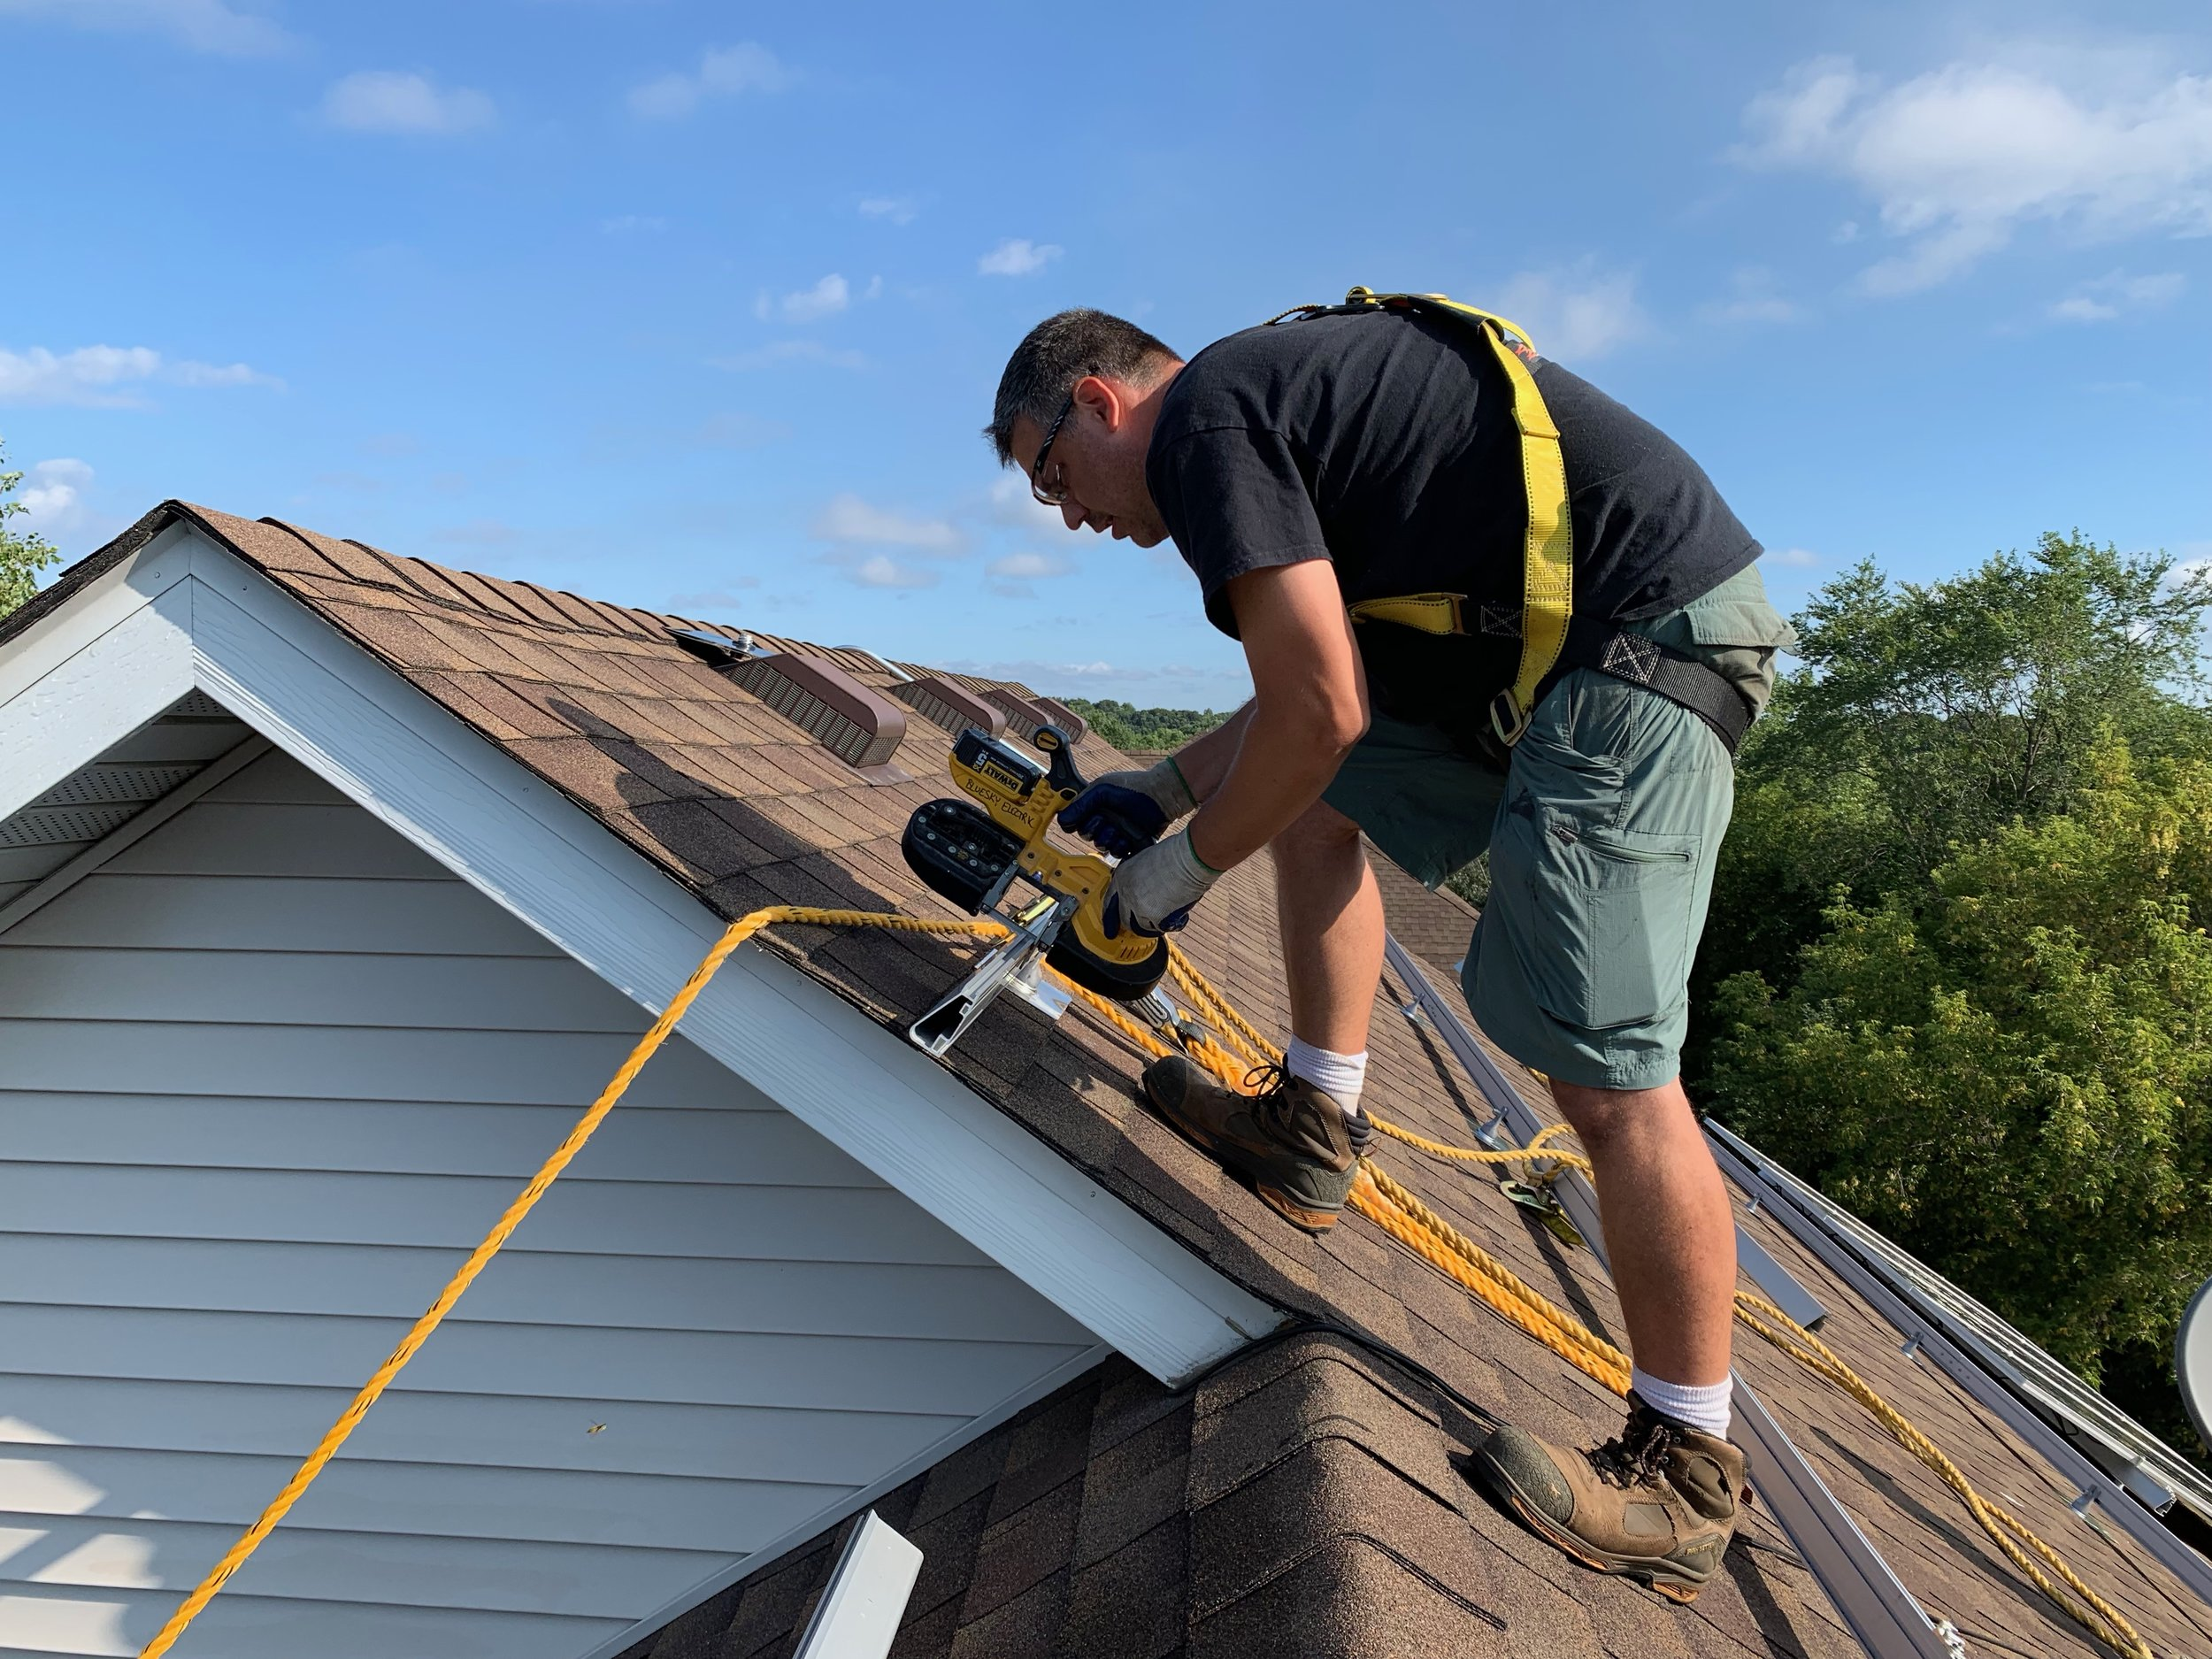 Experience Matters - Don't settle for unexperienced installers when you can count on Litty Solar's team of expert Solar Specialists.